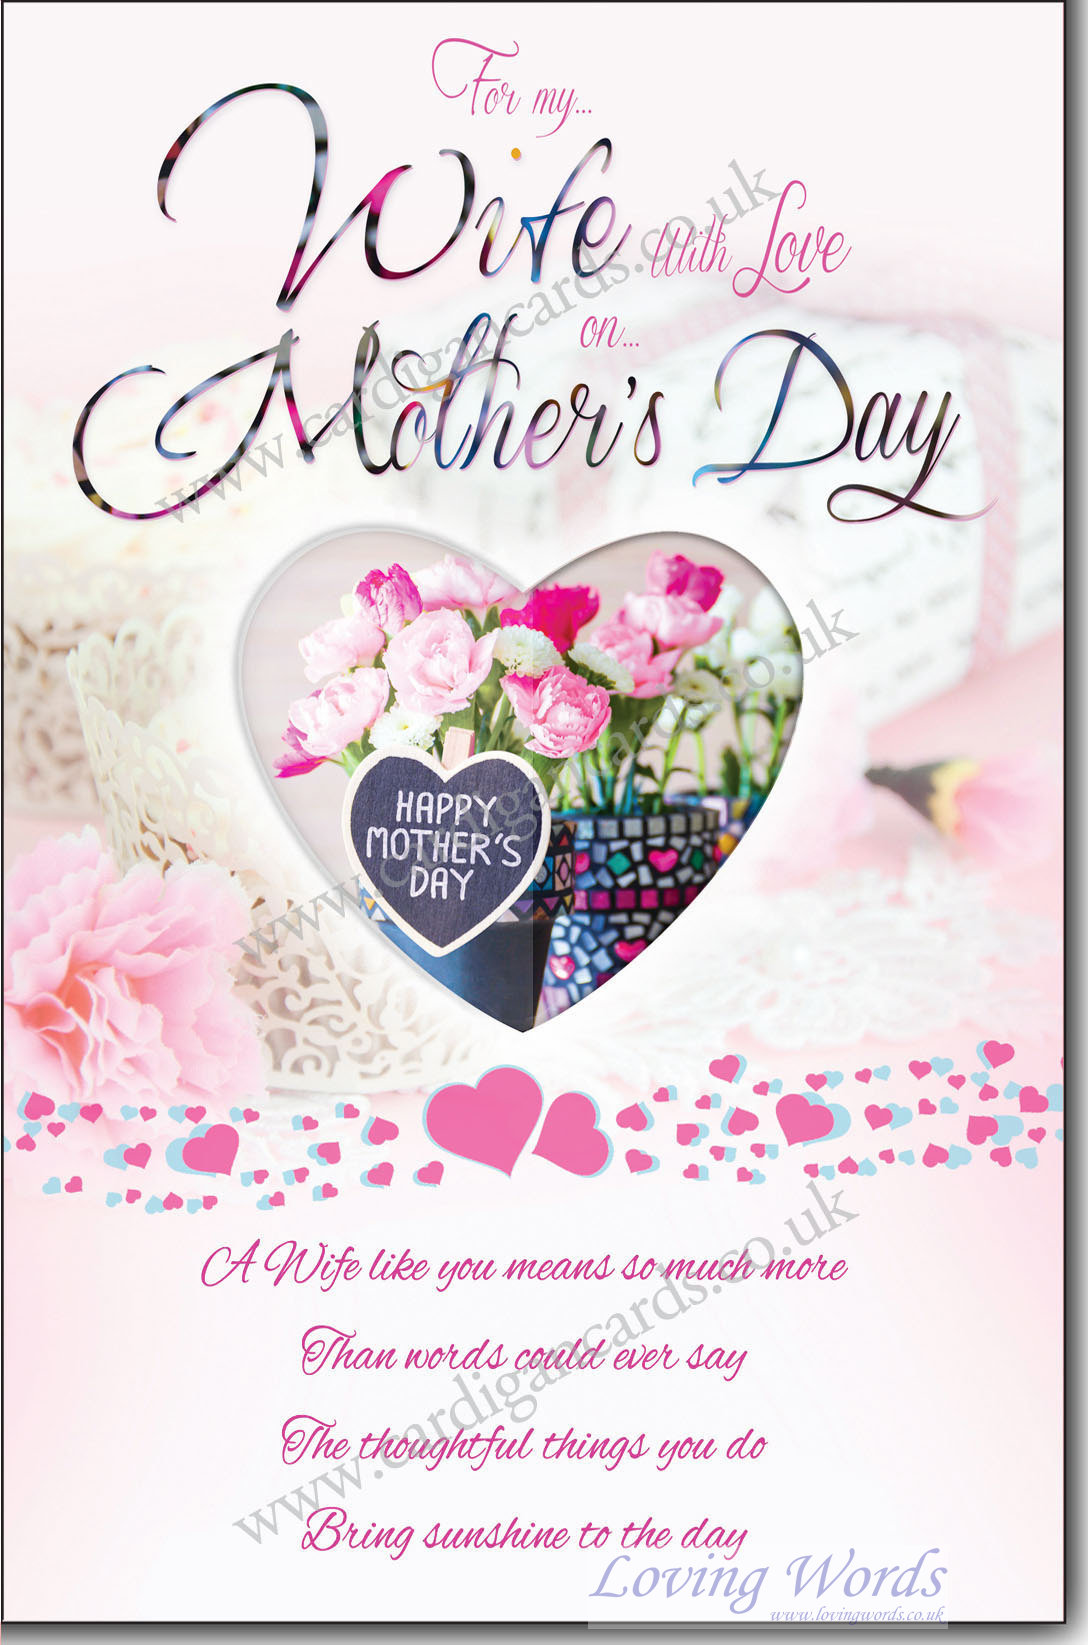 Wife on mothers day greeting cards by loving words personalised greeting cards kristyandbryce Choice Image